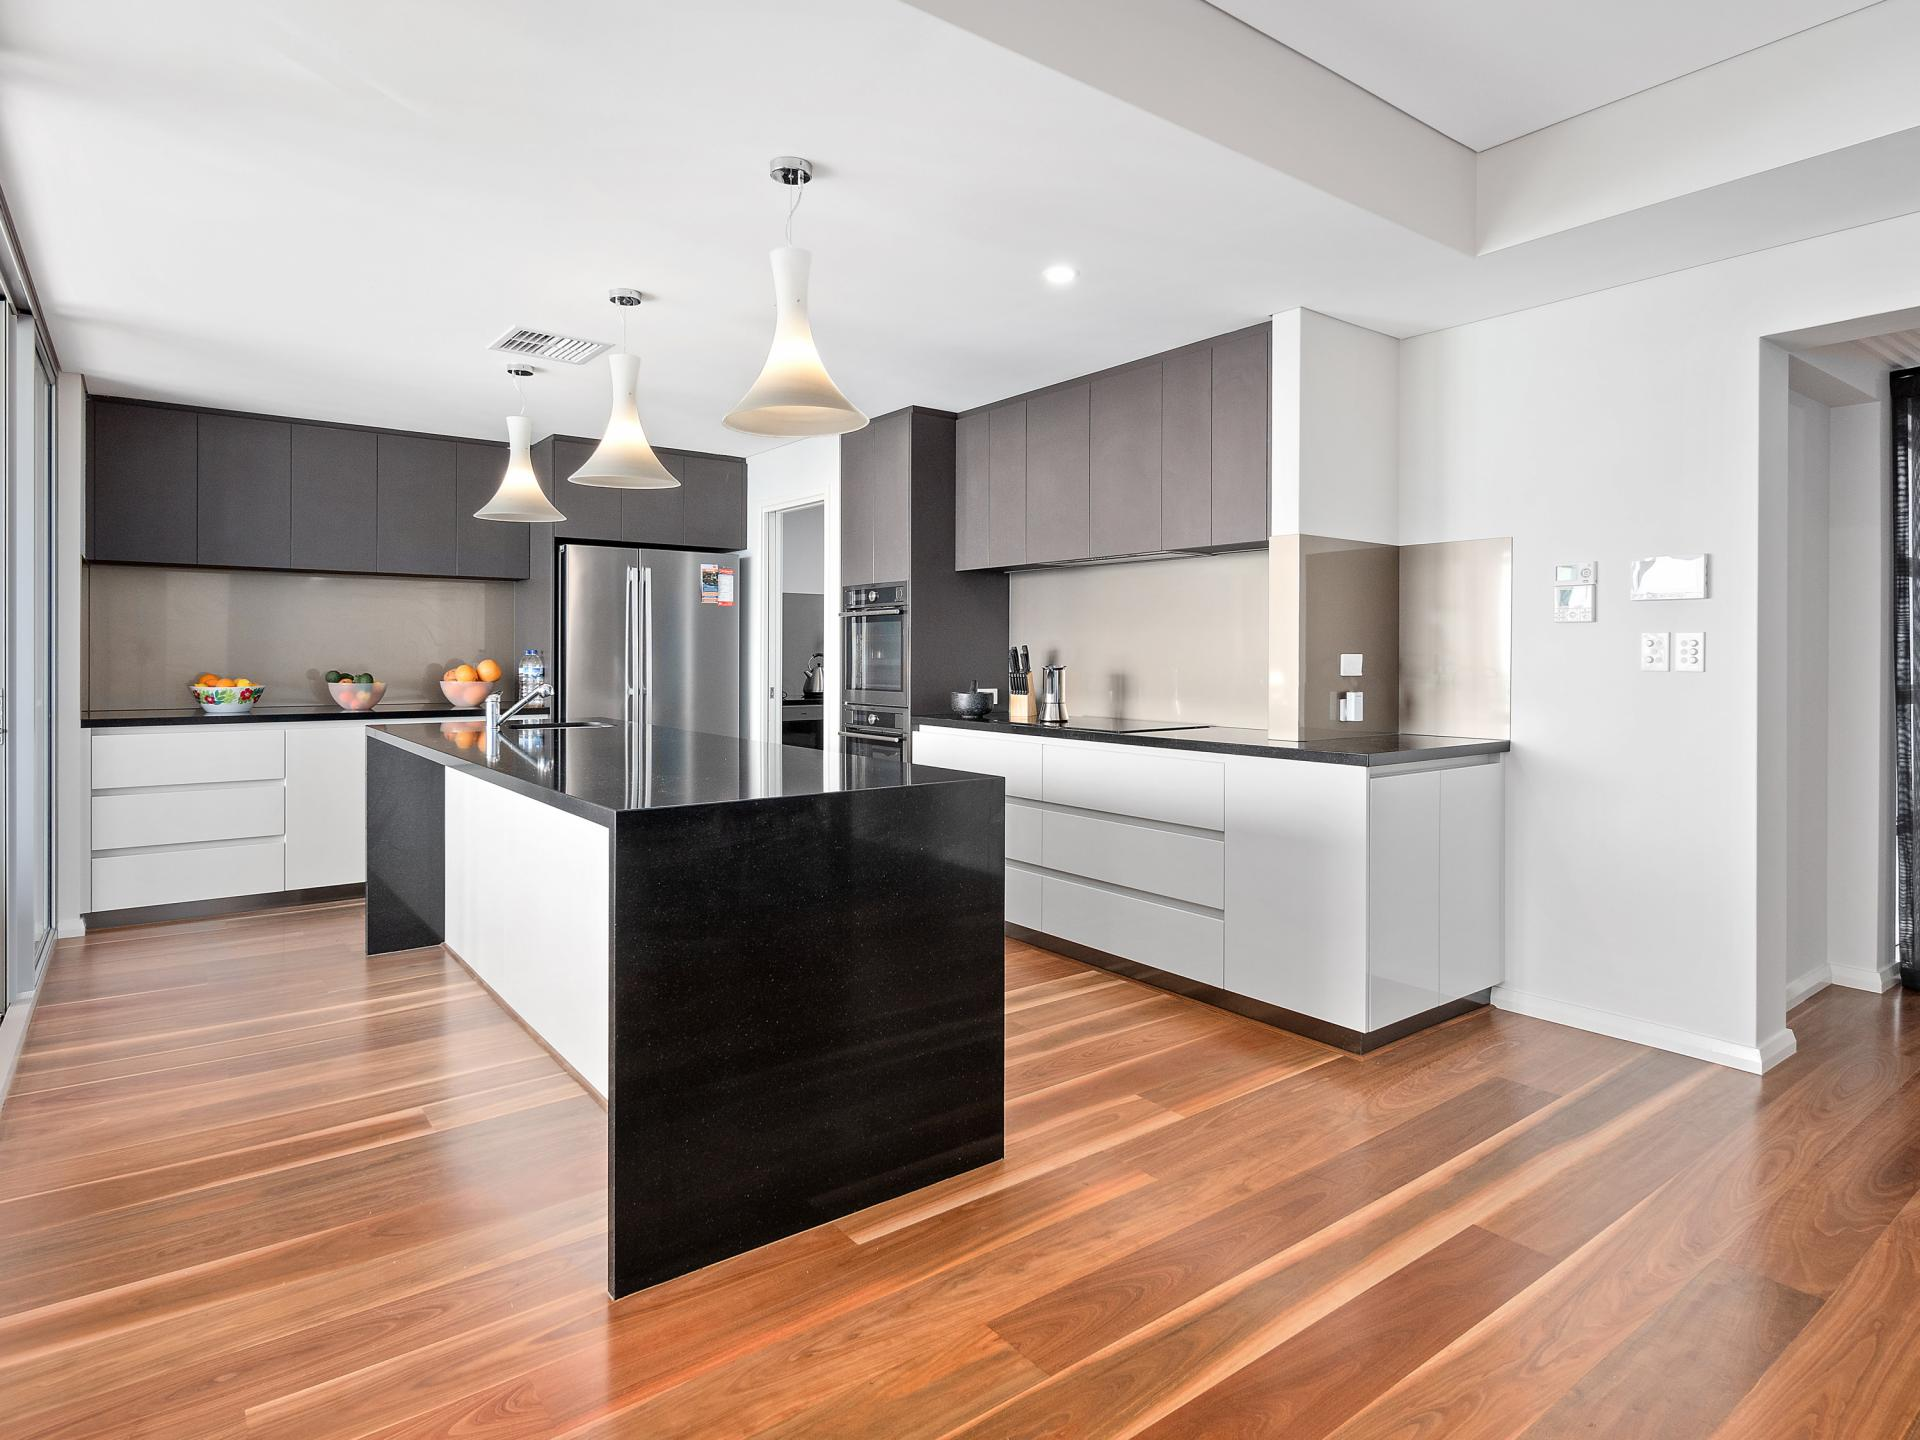 Boasting an exquisitely planned interior of monochromatic minimalism this kitchen is the heart of the home